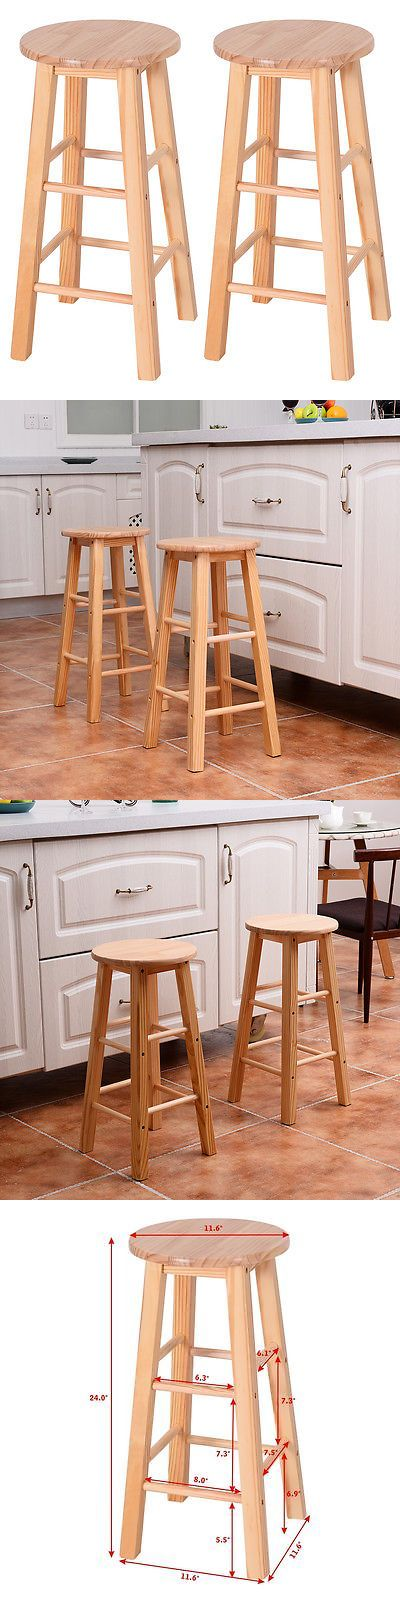 Bar Stools 153928: Set Of 2 Round 24 Bar Stools Wood Bistro Dining Kitchen Pub Chair Furniture New -> BUY IT NOW ONLY: $39.99 on eBay!